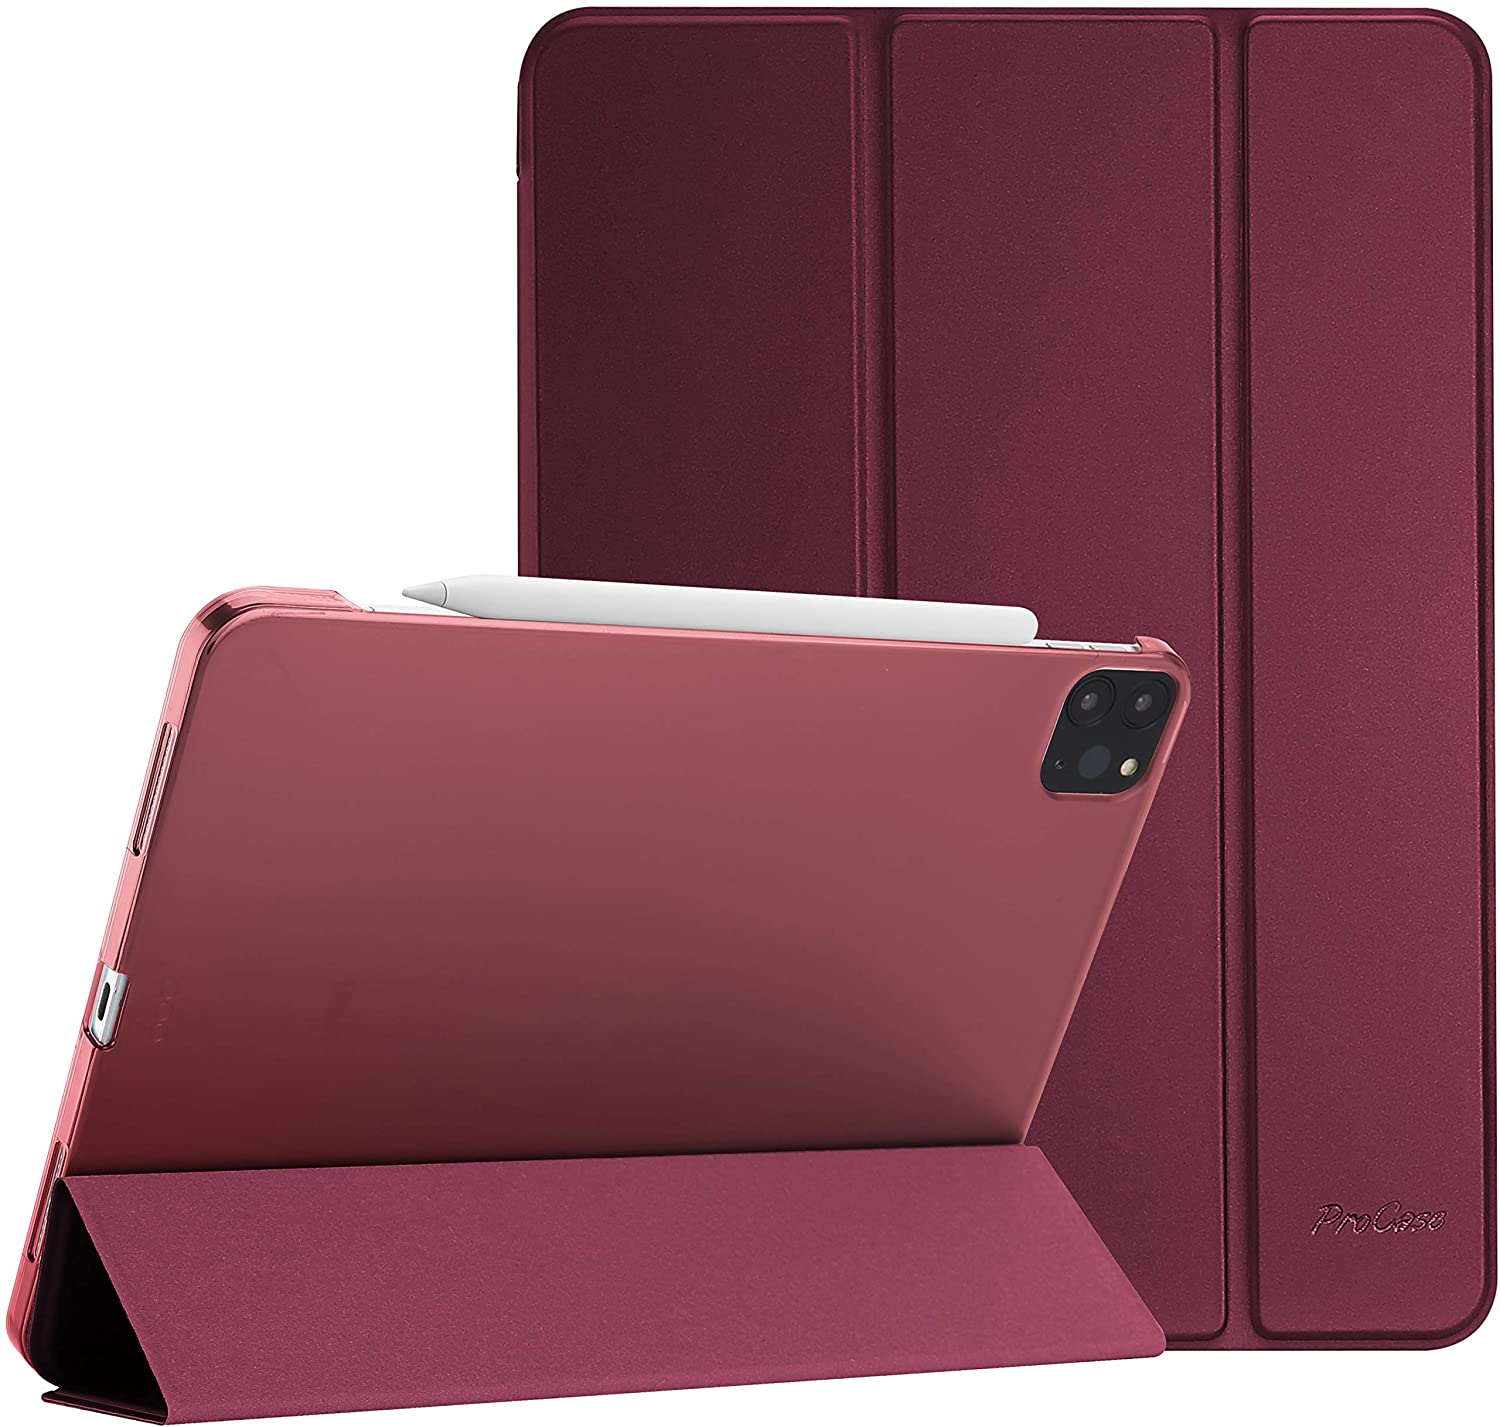 "ProCase iPad Pro 12.9 Case 4th Generation 2020 & 2018, [Support Apple Pencil 2 Charging] Slim Stand Hard Back Shell Smart Cover for iPad Pro 12.9"" 4th Gen 2020 / iPad Pro 12.9"" 3rd Gen 2018 –Wine"